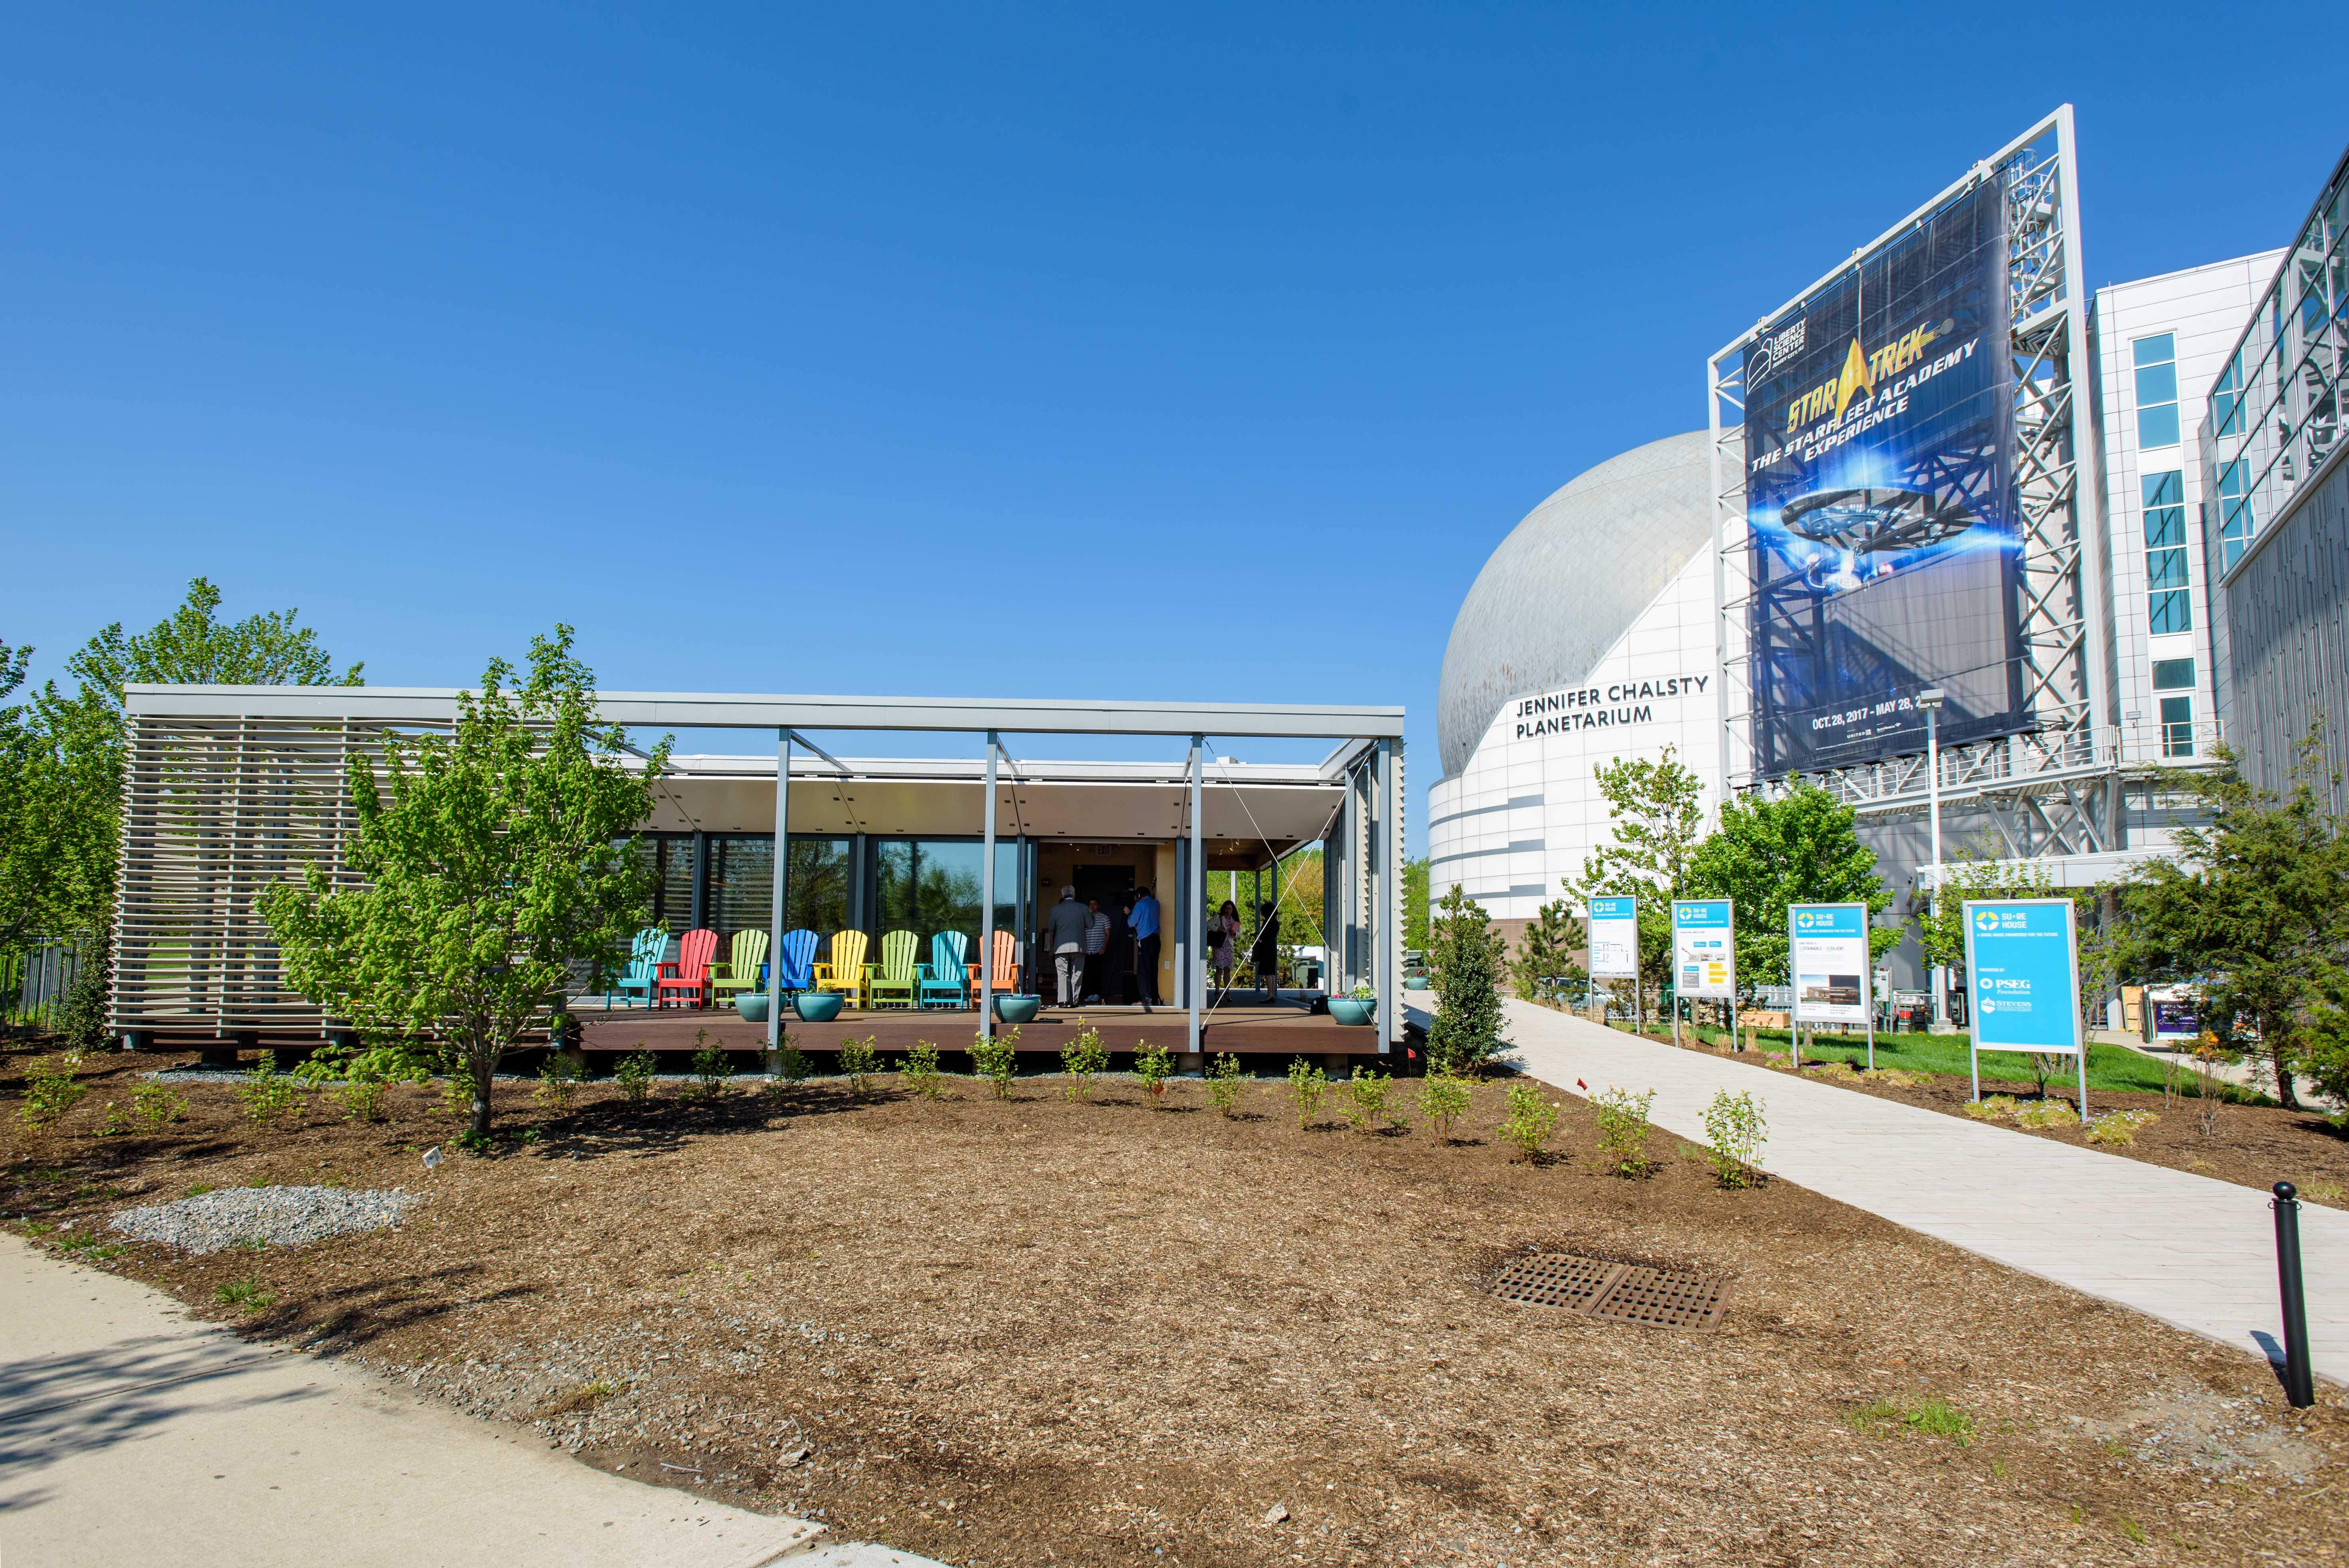 The SU+RE House is now a permanent exhibition the Liberty Science Center with tours available throughout the day.